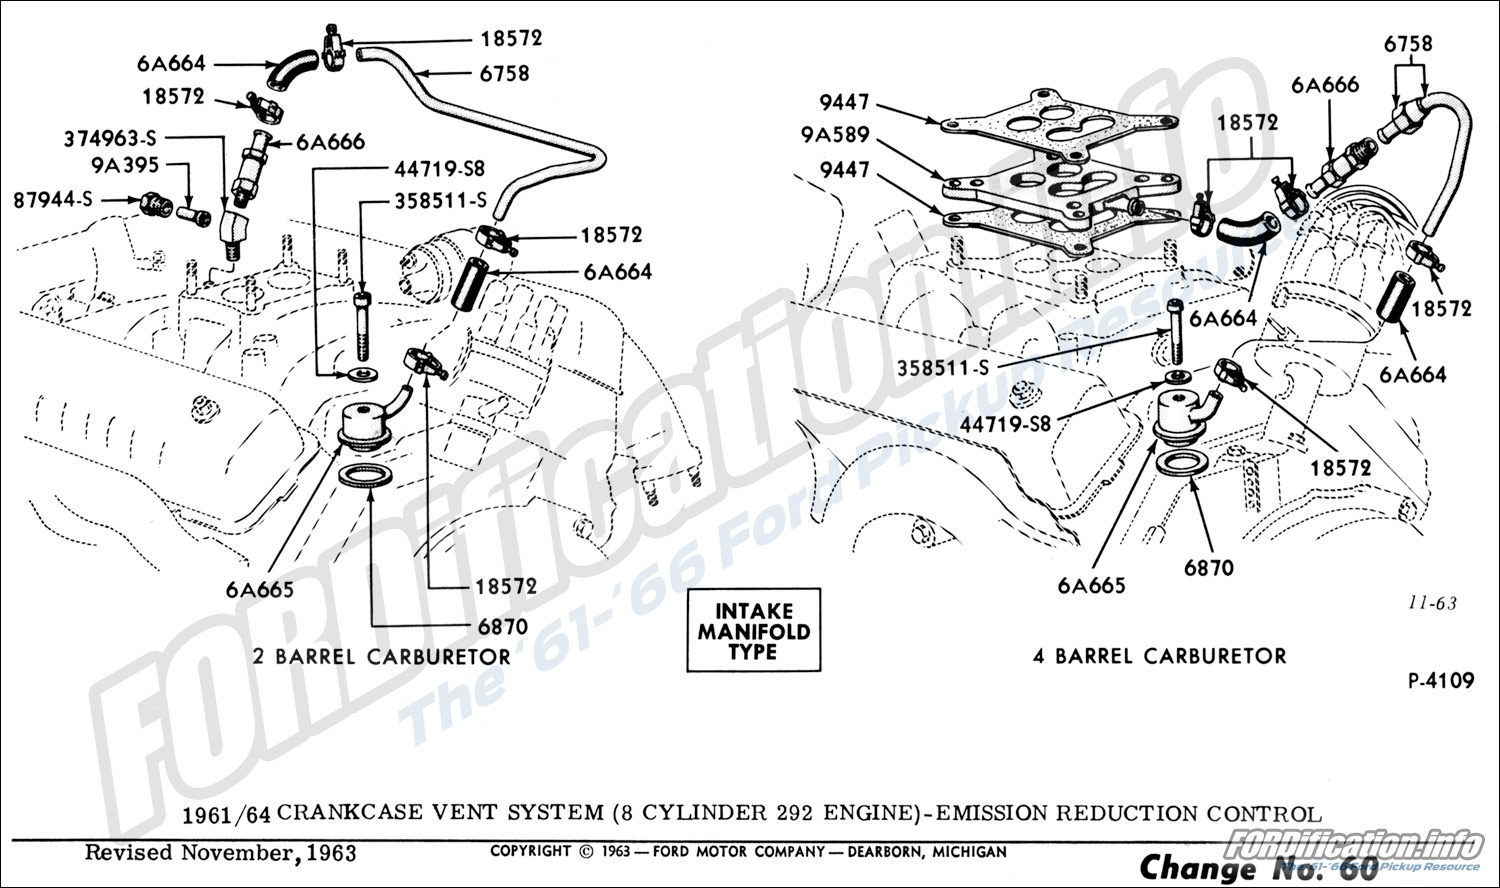 [DIAGRAM_38DE]  Engine-related Schematics - FORDification.info - The '61-'66 Ford Pickup  Resource | Ford Y Block Diagram |  | FORDification.info